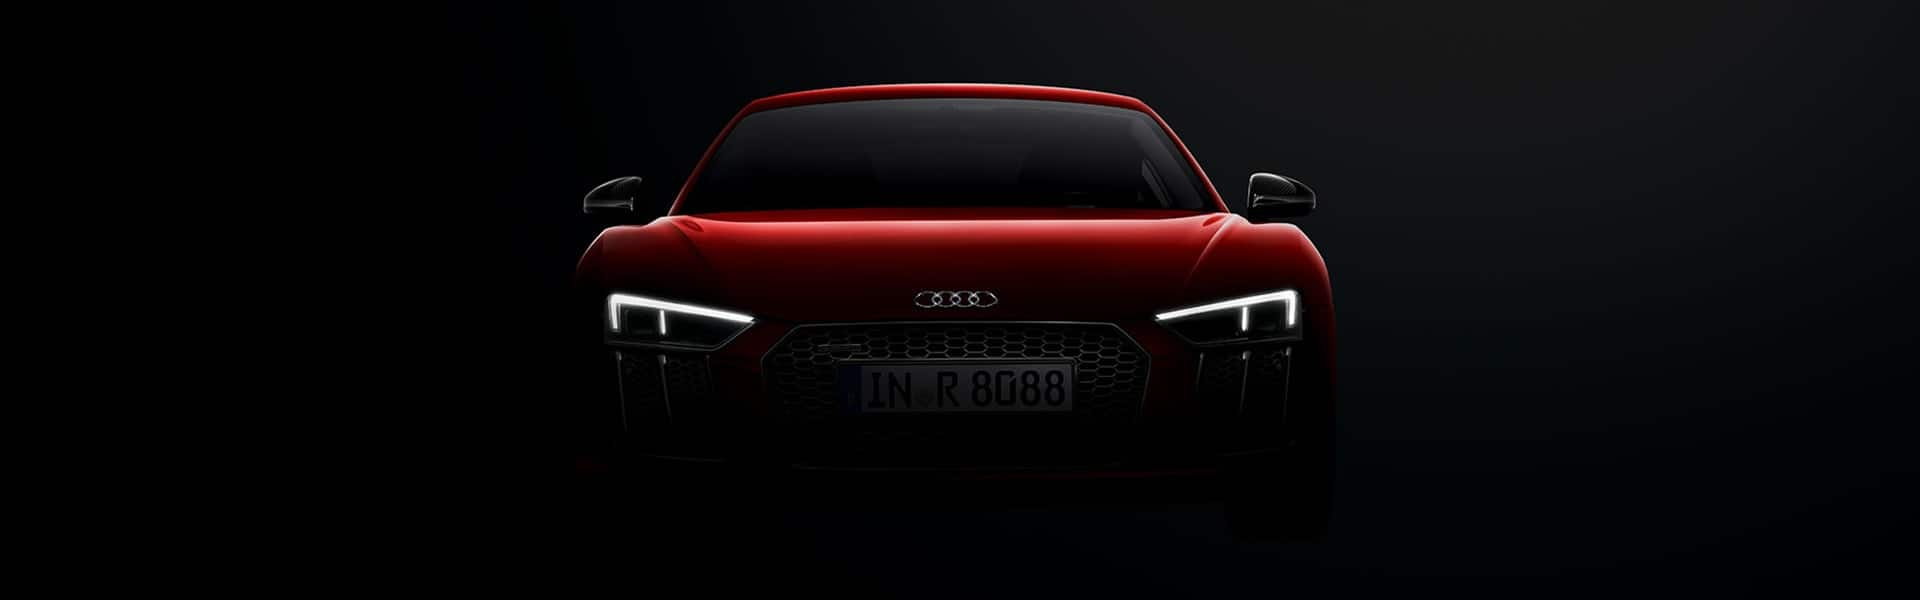 The 2018 R8 Coupé